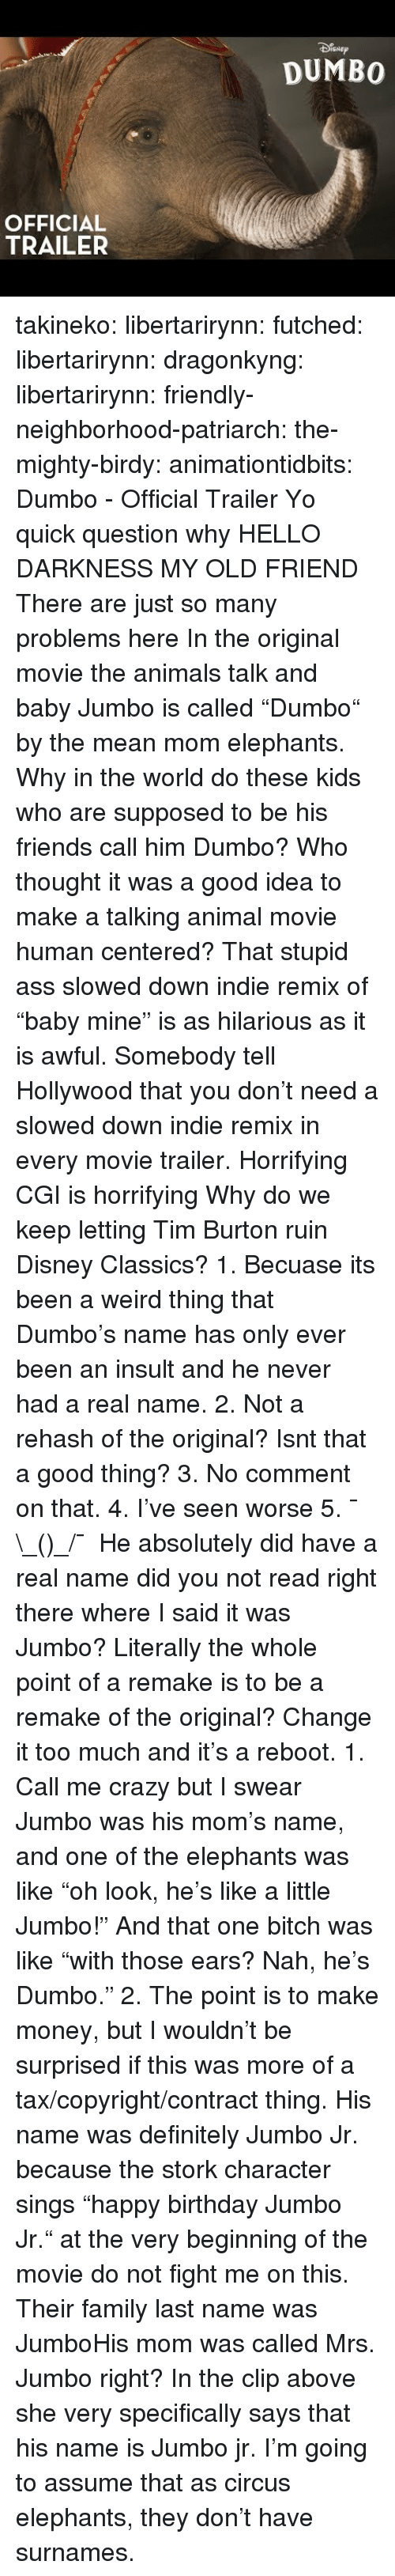 """Animals, Ass, and Birthday: SNEp  DUMBO  OFFICIAL  TRAILER takineko:  libertarirynn: futched:   libertarirynn:   dragonkyng:   libertarirynn:   friendly-neighborhood-patriarch:  the-mighty-birdy:   animationtidbits:  Dumbo - Official Trailer  Yo quick question why   HELLO DARKNESS MY OLD FRIEND   There are just so many problems here In the original movie the animals talk and baby Jumbo is called """"Dumbo"""" by the mean mom elephants. Why in the world do these kids who are supposed to be his friends call him Dumbo? Who thought it was a good idea to make a talking animal movie human centered? That stupid ass slowed down indie remix of """"baby mine"""" is as hilarious as it is awful. Somebody tell Hollywood that you don't need a slowed down indie remix in every movie trailer. Horrifying CGI is horrifying Why do we keep letting Tim Burton ruin Disney Classics?   1. Becuase its been a weird thing that Dumbo's name has only ever been an insult and he never had a real name. 2. Not a rehash of the original? Isnt that a good thing? 3. No comment on that. 4. I've seen worse 5. ¯\_(ツ)_/¯   He absolutely did have a real name did you not read right there where I said it was Jumbo? Literally the whole point of a remake is to be a remake of the original? Change it too much and it's a reboot.   1. Call me crazy but I swear Jumbo was his mom's name, and one of the elephants was like """"oh look, he's like a little Jumbo!"""" And that one bitch was like """"with those ears? Nah, he's Dumbo."""" 2. The point is to make money, but I wouldn't be surprised if this was more of a tax/copyright/contract thing.   His name was definitely Jumbo Jr. because the stork character sings """"happy birthday Jumbo Jr."""" at the very beginning of the movie do not fight me on this.  Their family last name was JumboHis mom was called Mrs. Jumbo right?  In the clip above she very specifically says that his name is Jumbo jr. I'm going to assume that as circus elephants, they don't have surnames."""